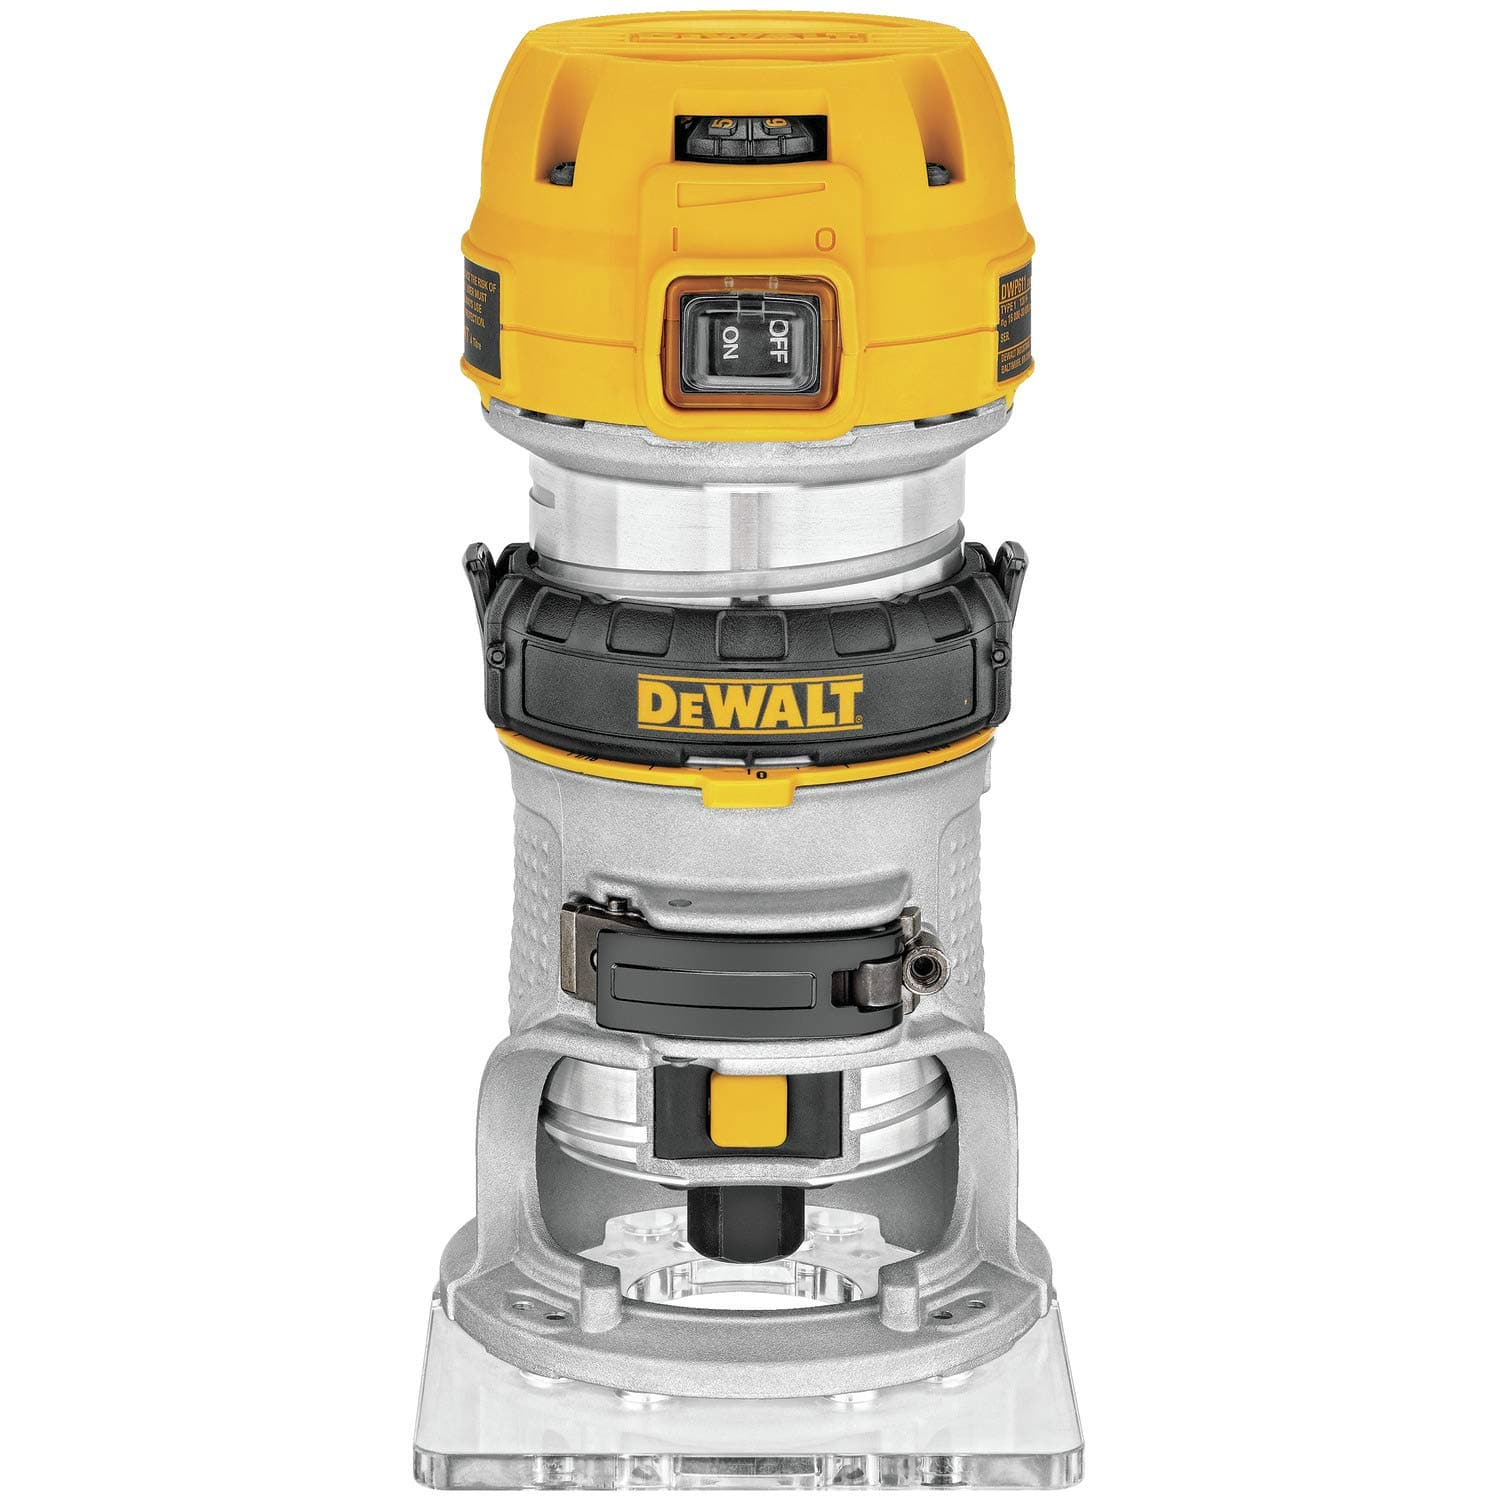 DeWalt DWP611 Variable Speed Compact Router $94.99 Amazon